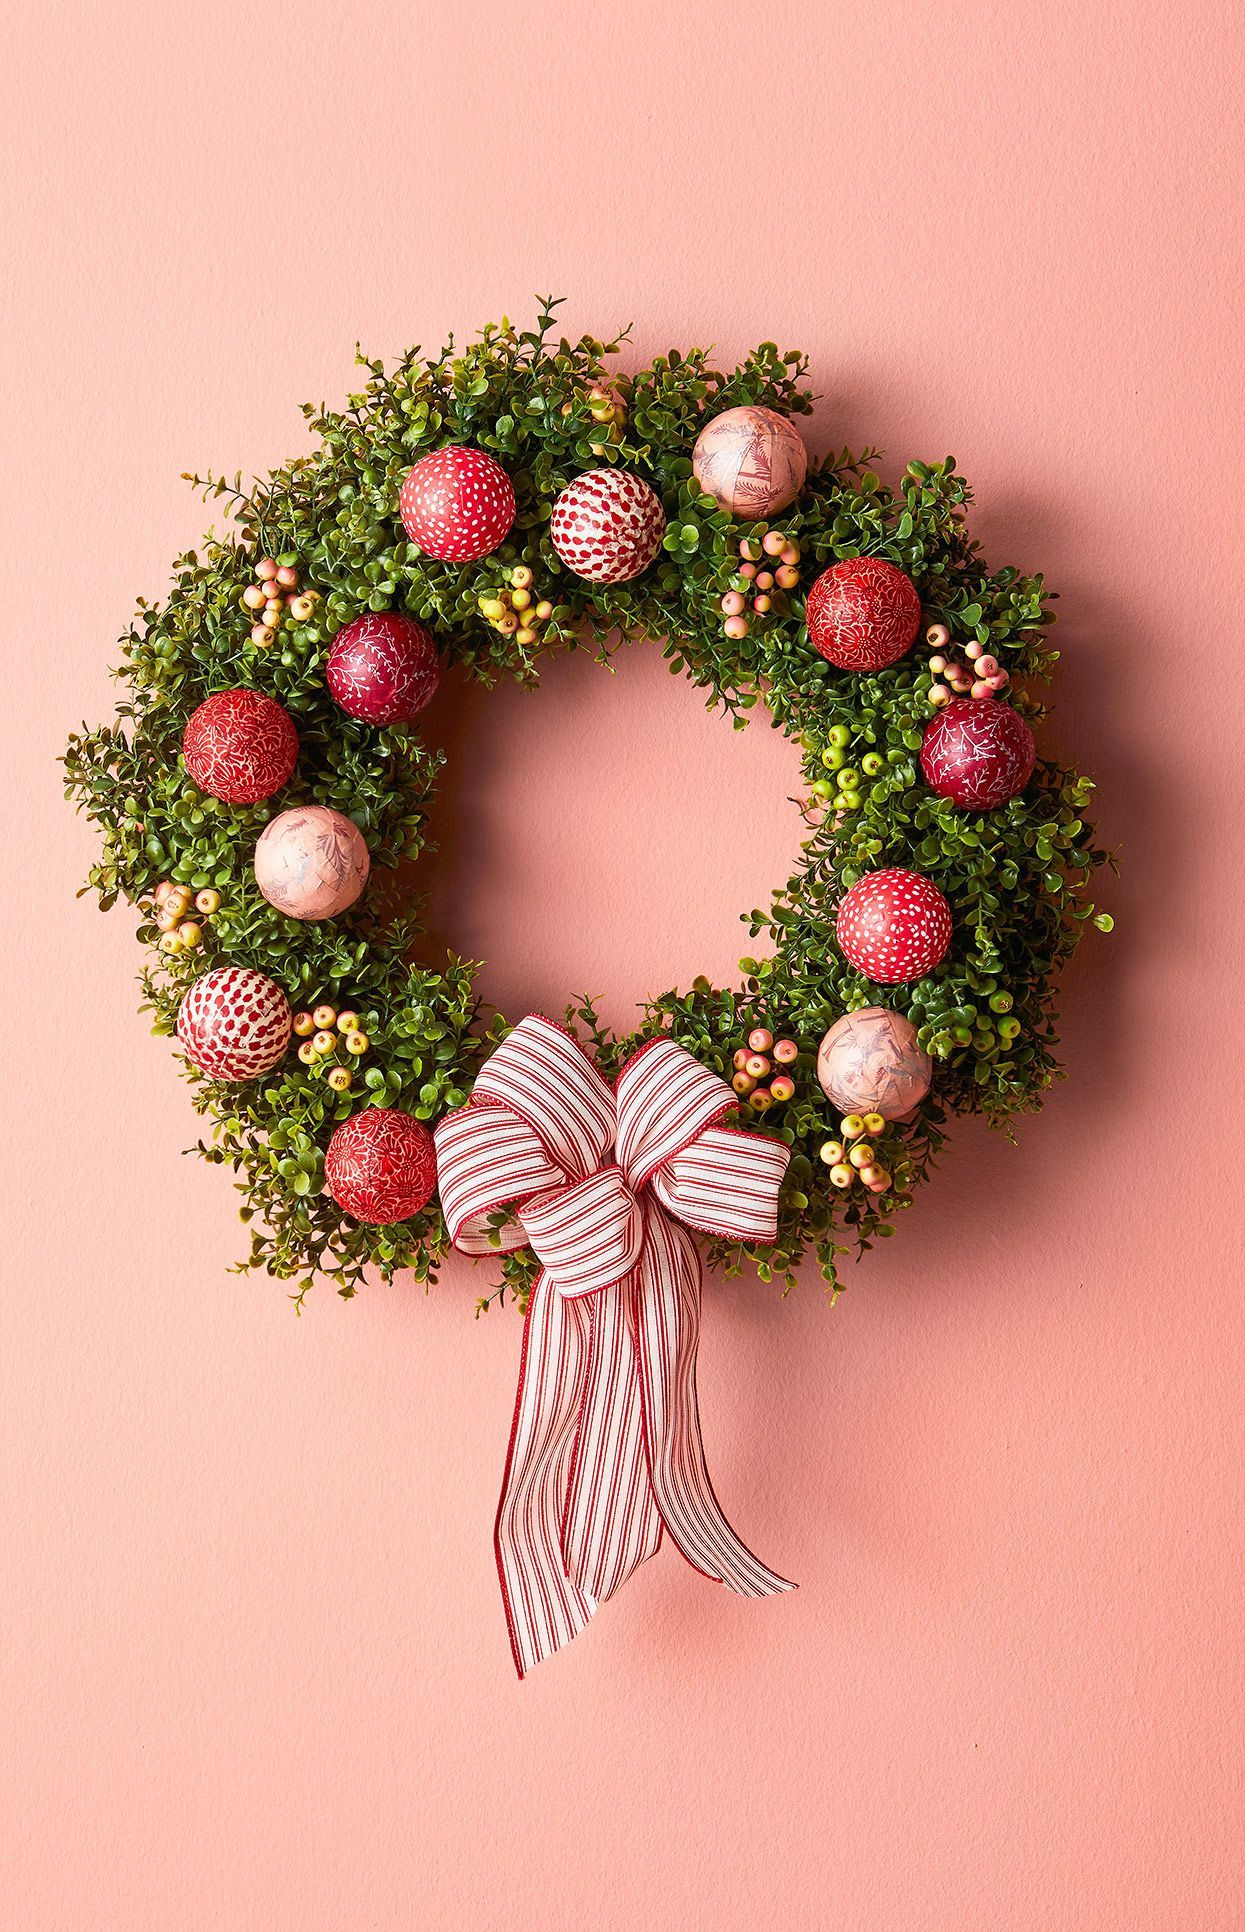 Crafting these decoupaged Christmas ornaments is the perfect project to use up that stash of scraps from old rolls of wrapping paper. A candy-striped pom-pom bow is a finishing touch for this pretty-as-a-present faux boxwood wreath. #christmas #holidaydecor #wreath #holidaywreathideas #diychristmaswreath #bhg